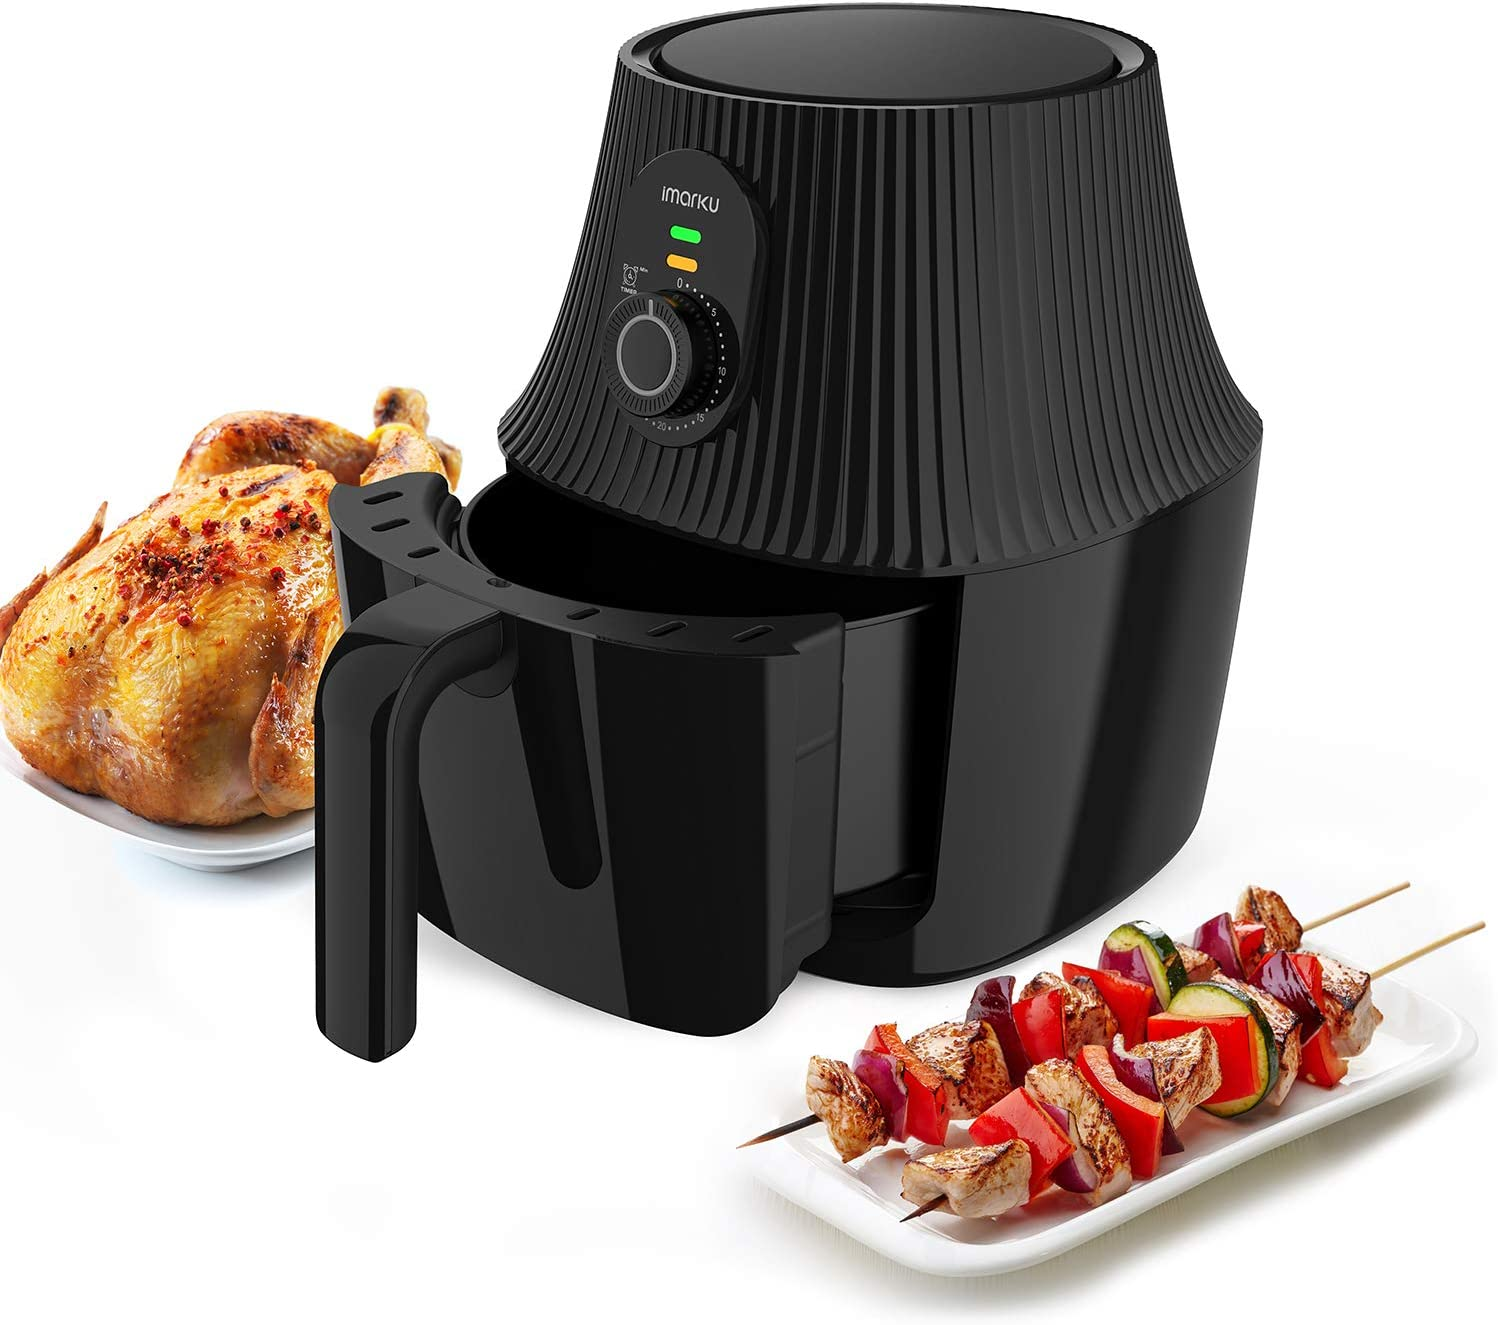 Air Fryer, imarku 2.6QT Electric Hot Air Fryers with Fast Cook Oven Oilless Cooker with Timer Knob, Healthy Power Oven Oilless Cooker for Air Frying, Roasting and Reheating